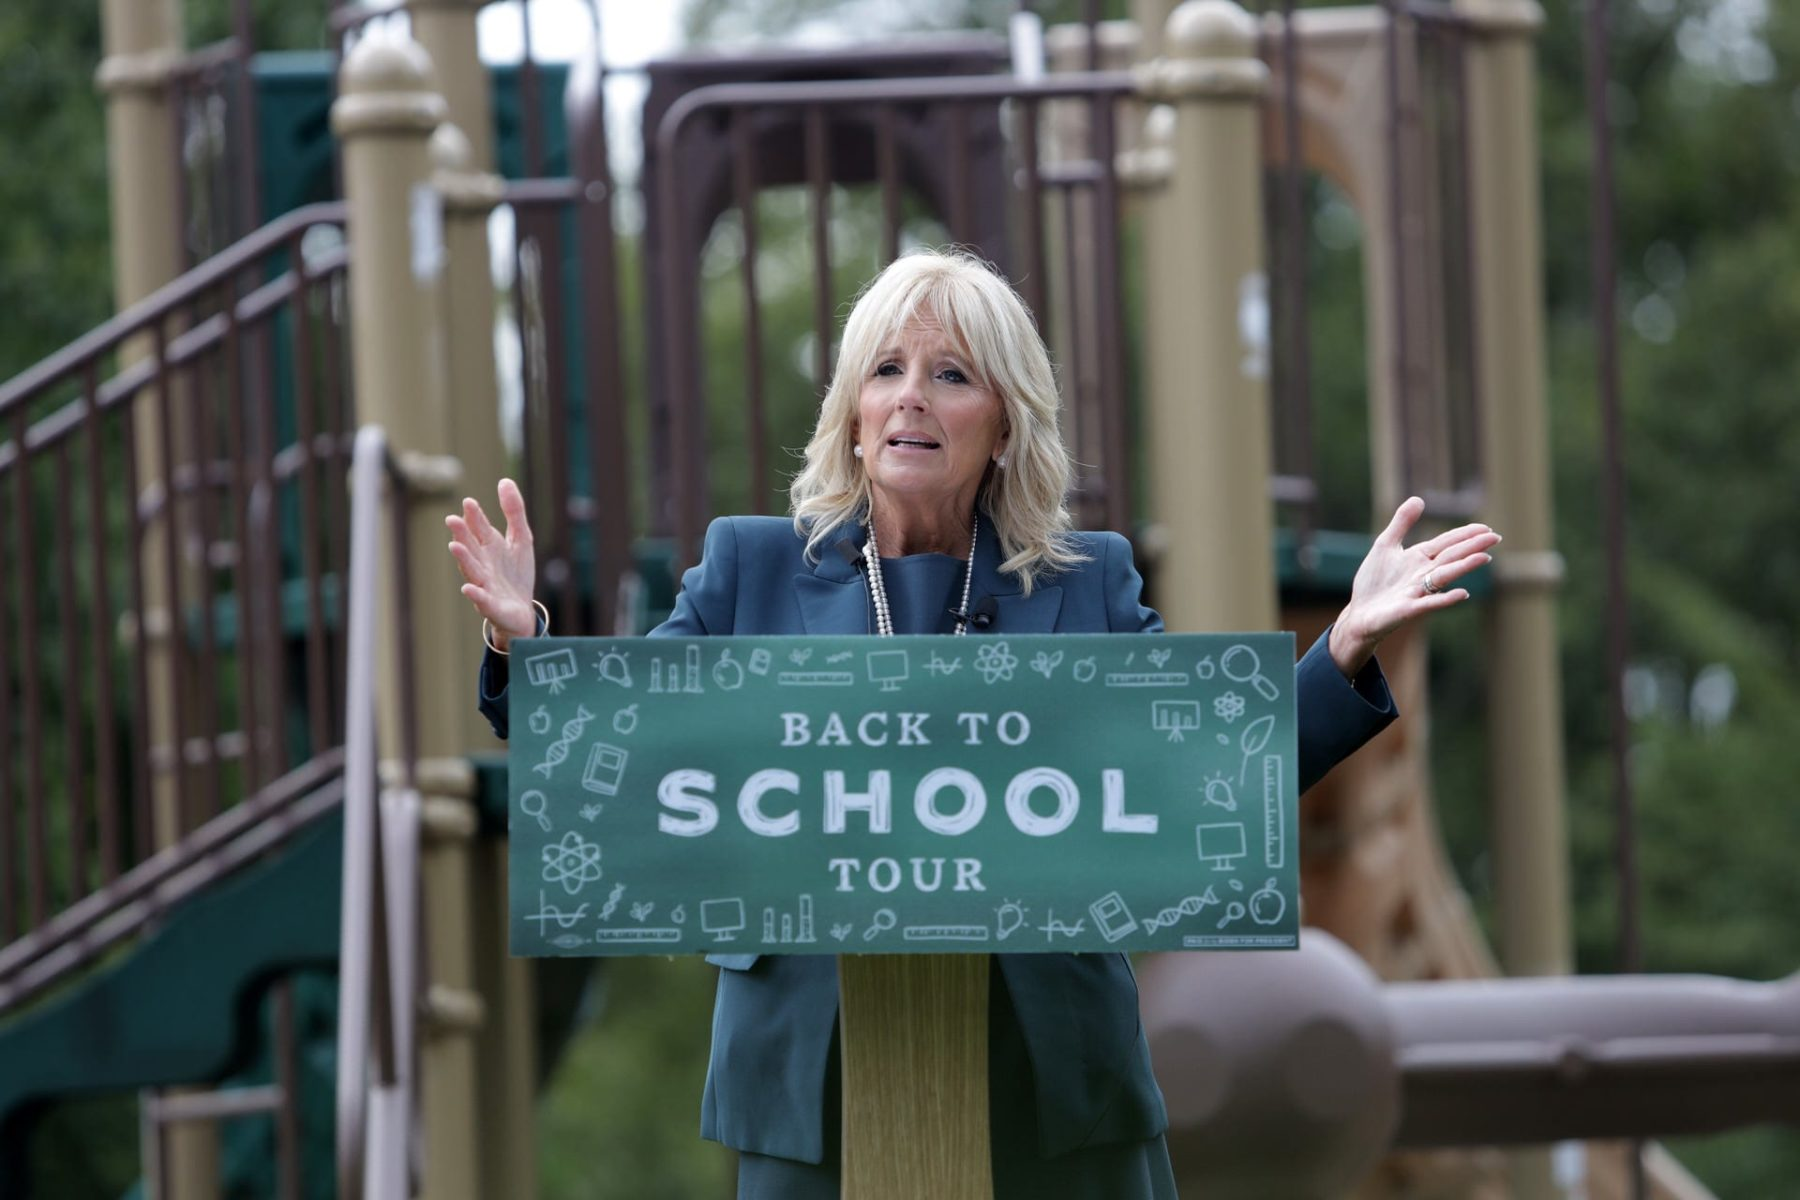 Jill Biden speaking at a podium at a playground.